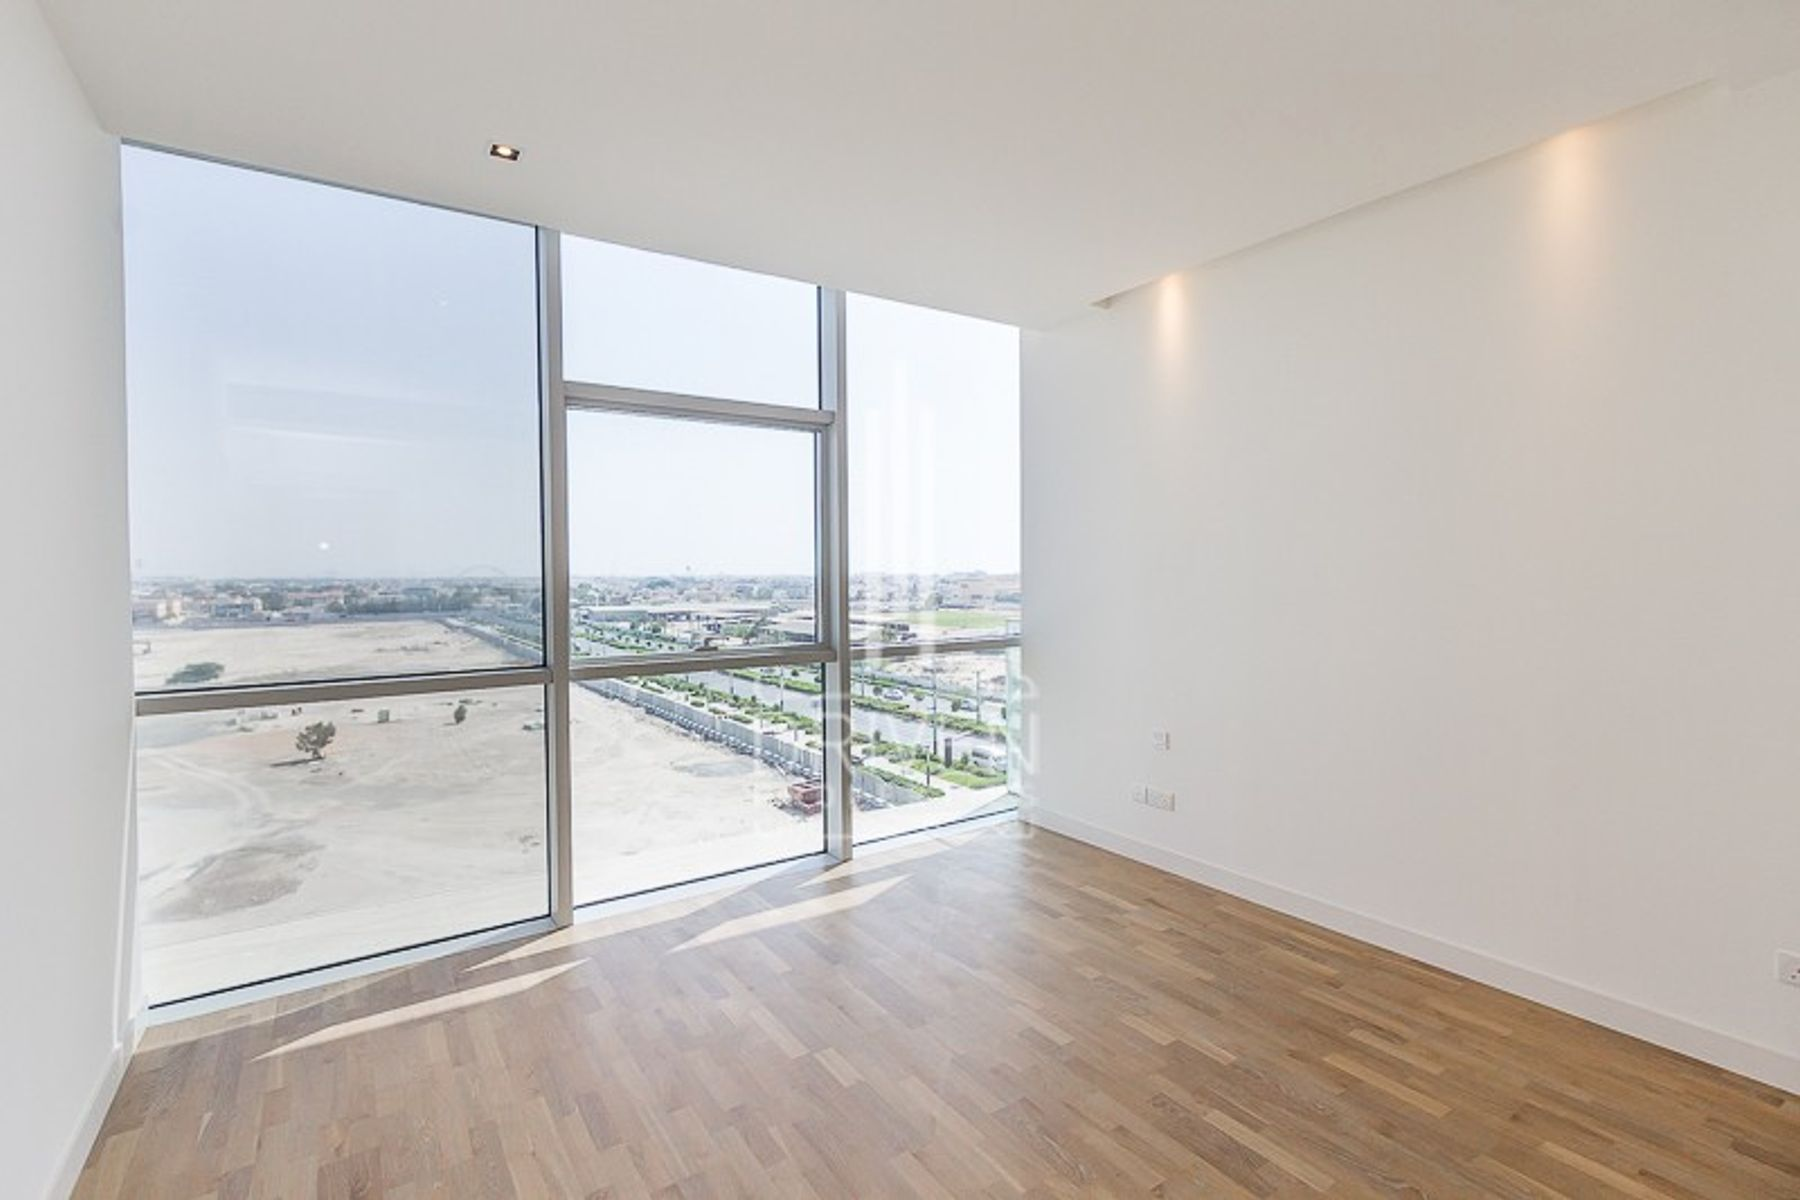 Apartment for Rent in Building 25, City Walk